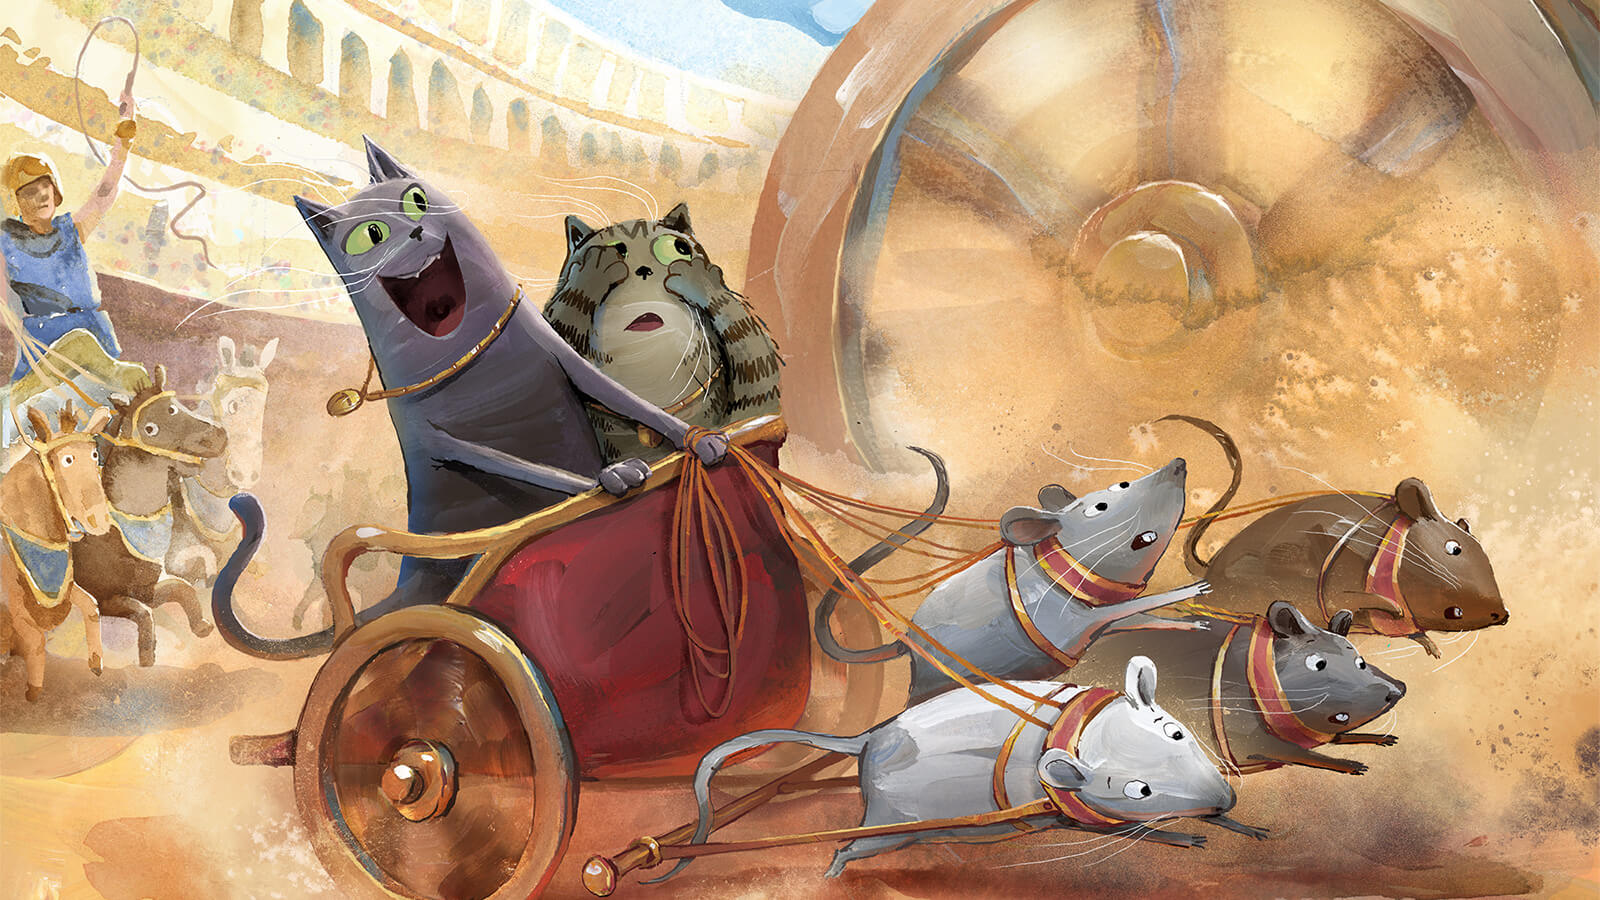 Two cats in a chariot pulled by mice.